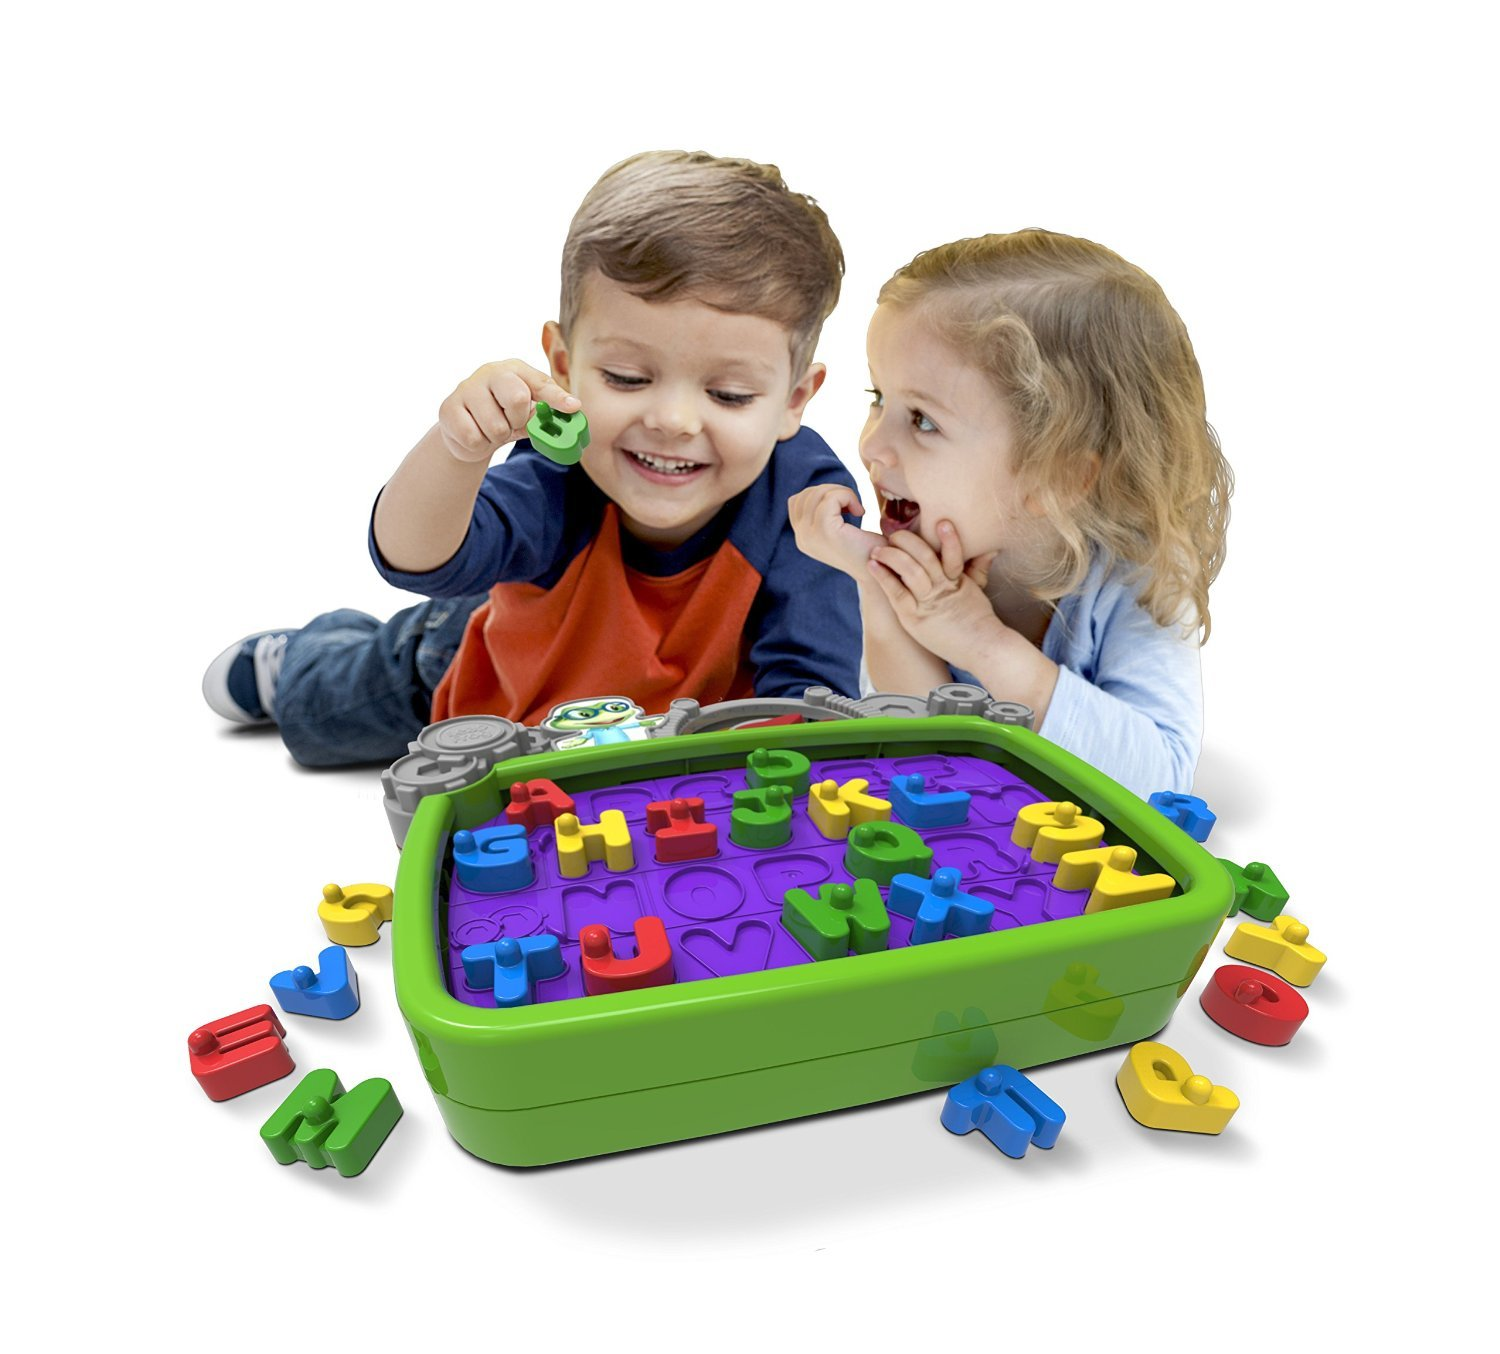 Walmart Learning Toys : Leapfrog leaping letters images at mighty ape nz